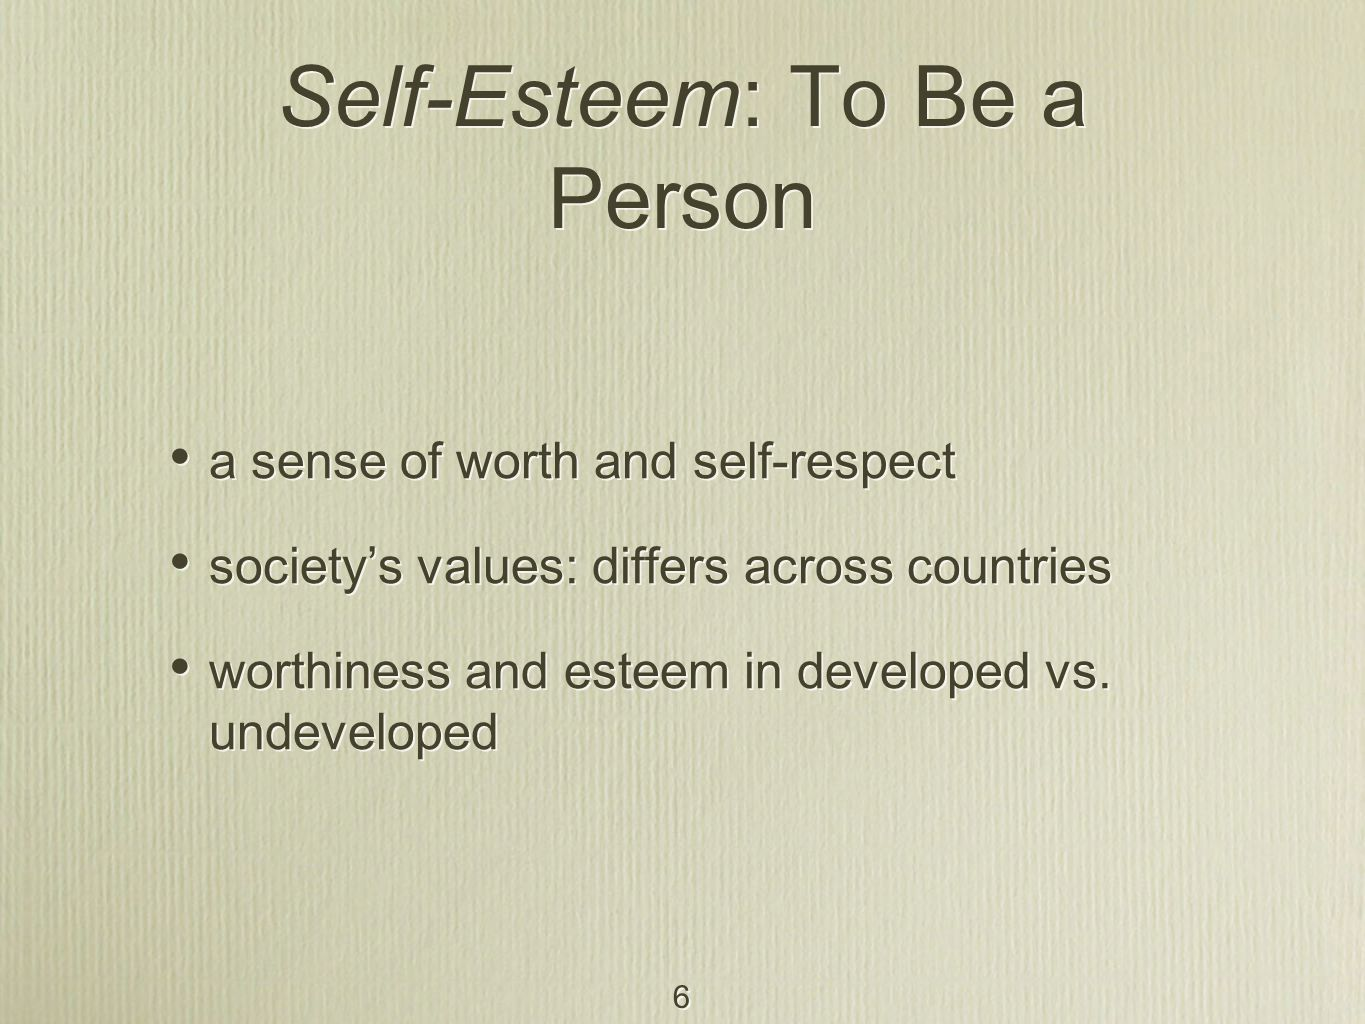 6 Self-Esteem: To Be a Person a sense of worth and self-respect society's values: differs across countries worthiness and esteem in developed vs. unde